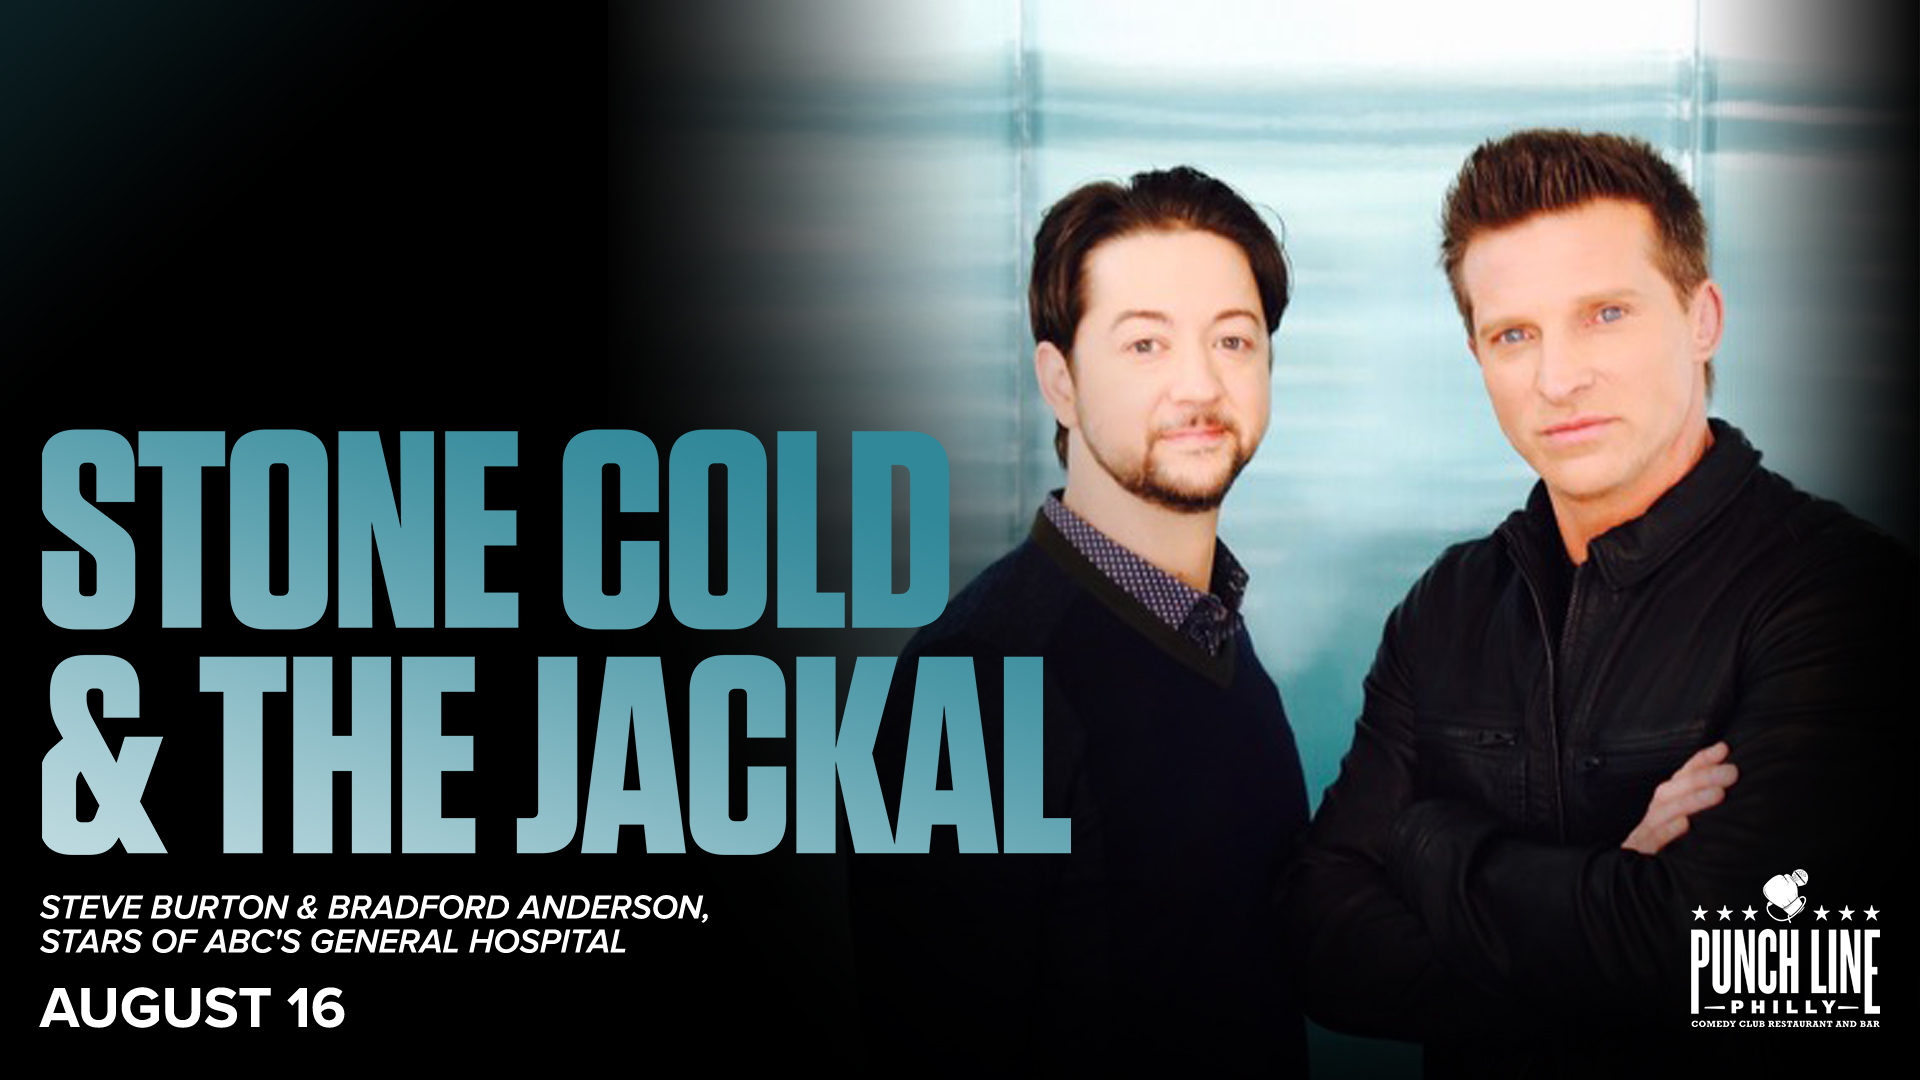 Stone Cold & the Jackal Tour: Steve Burton & Bradford Anderson from GH